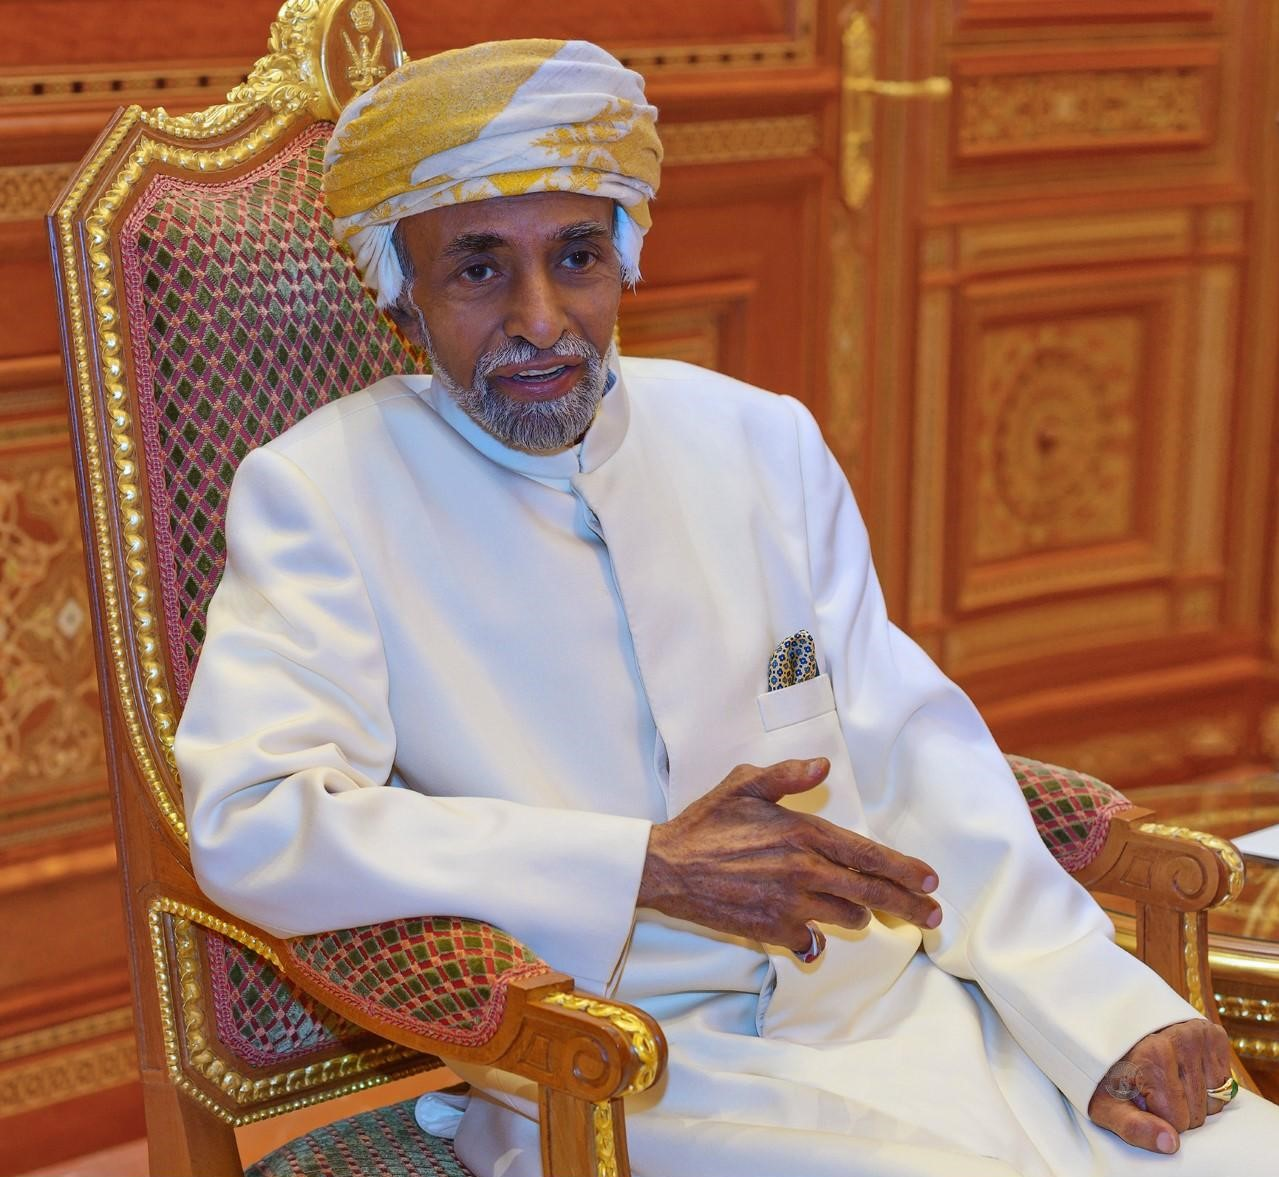 In Pictures: His Majesty Sultan Qaboos meets UK Foreign Minister